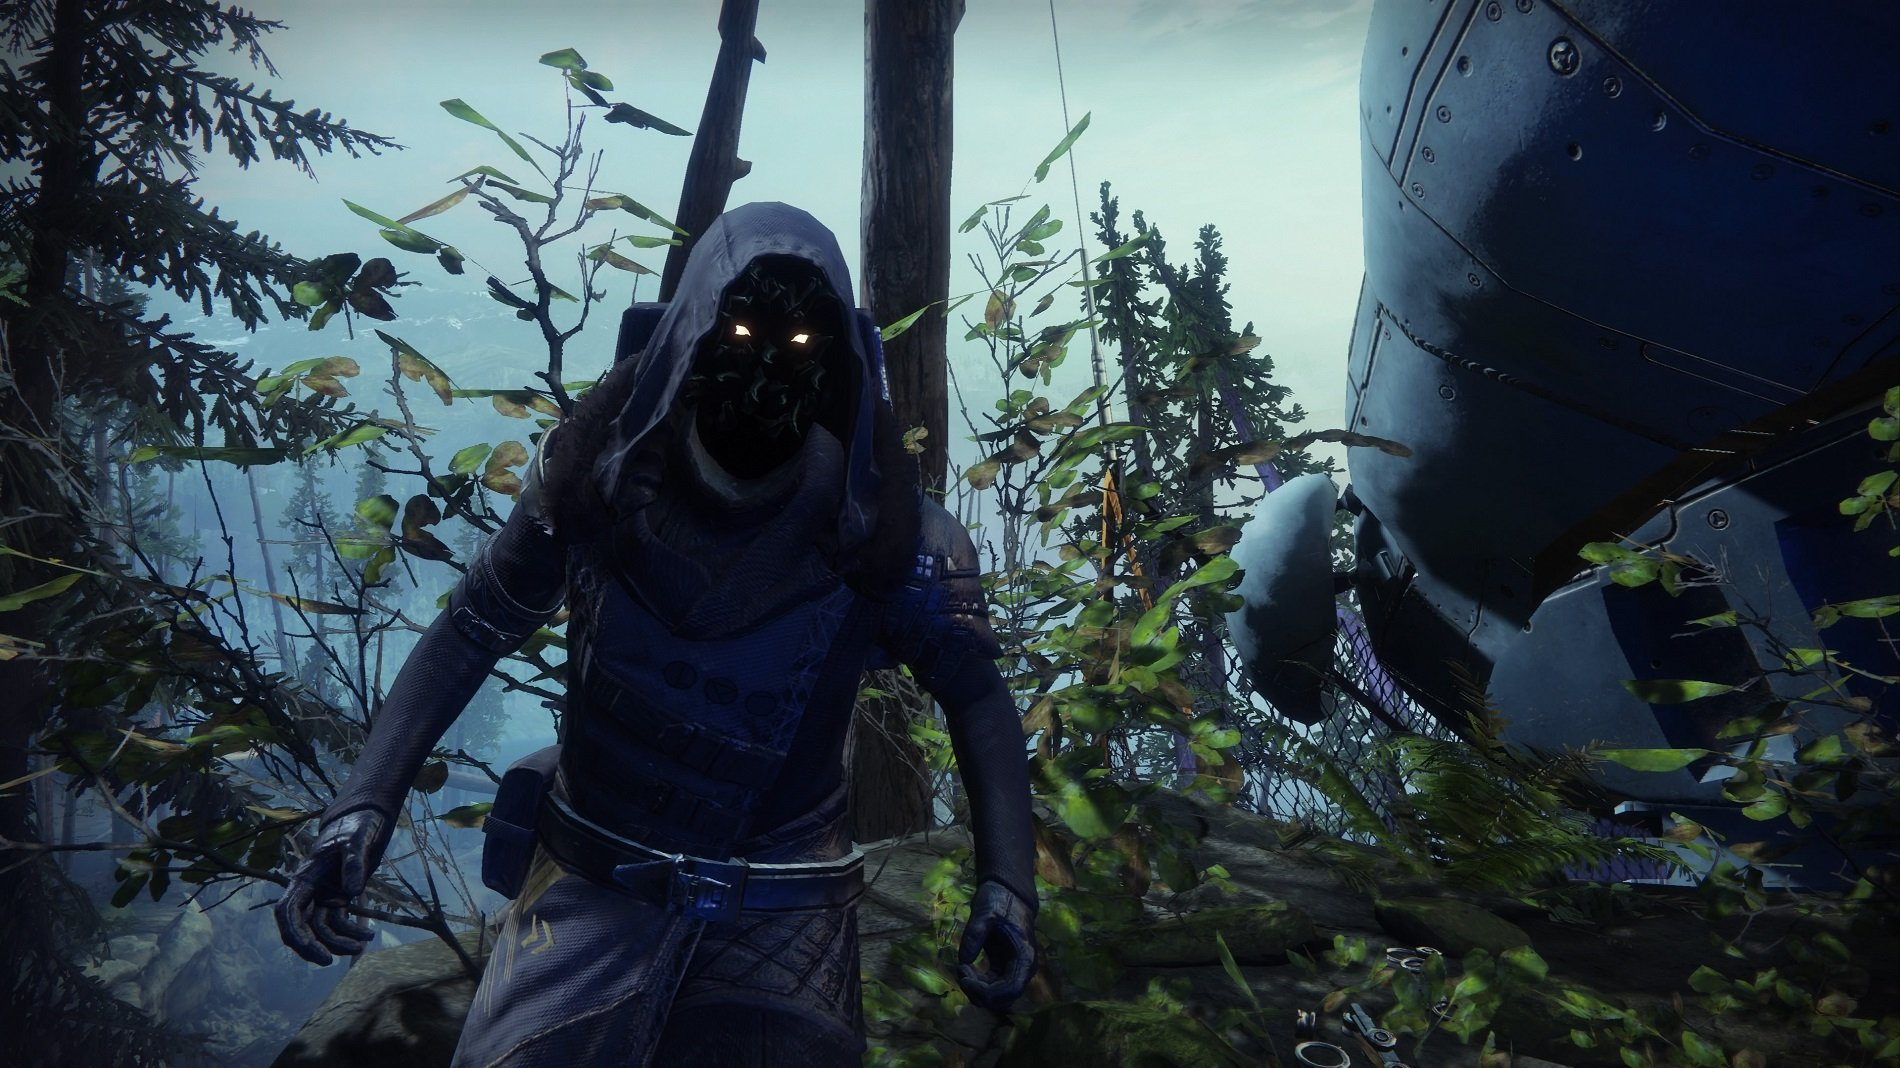 Where to find Xur in Destiny 2 - August 21, 2020